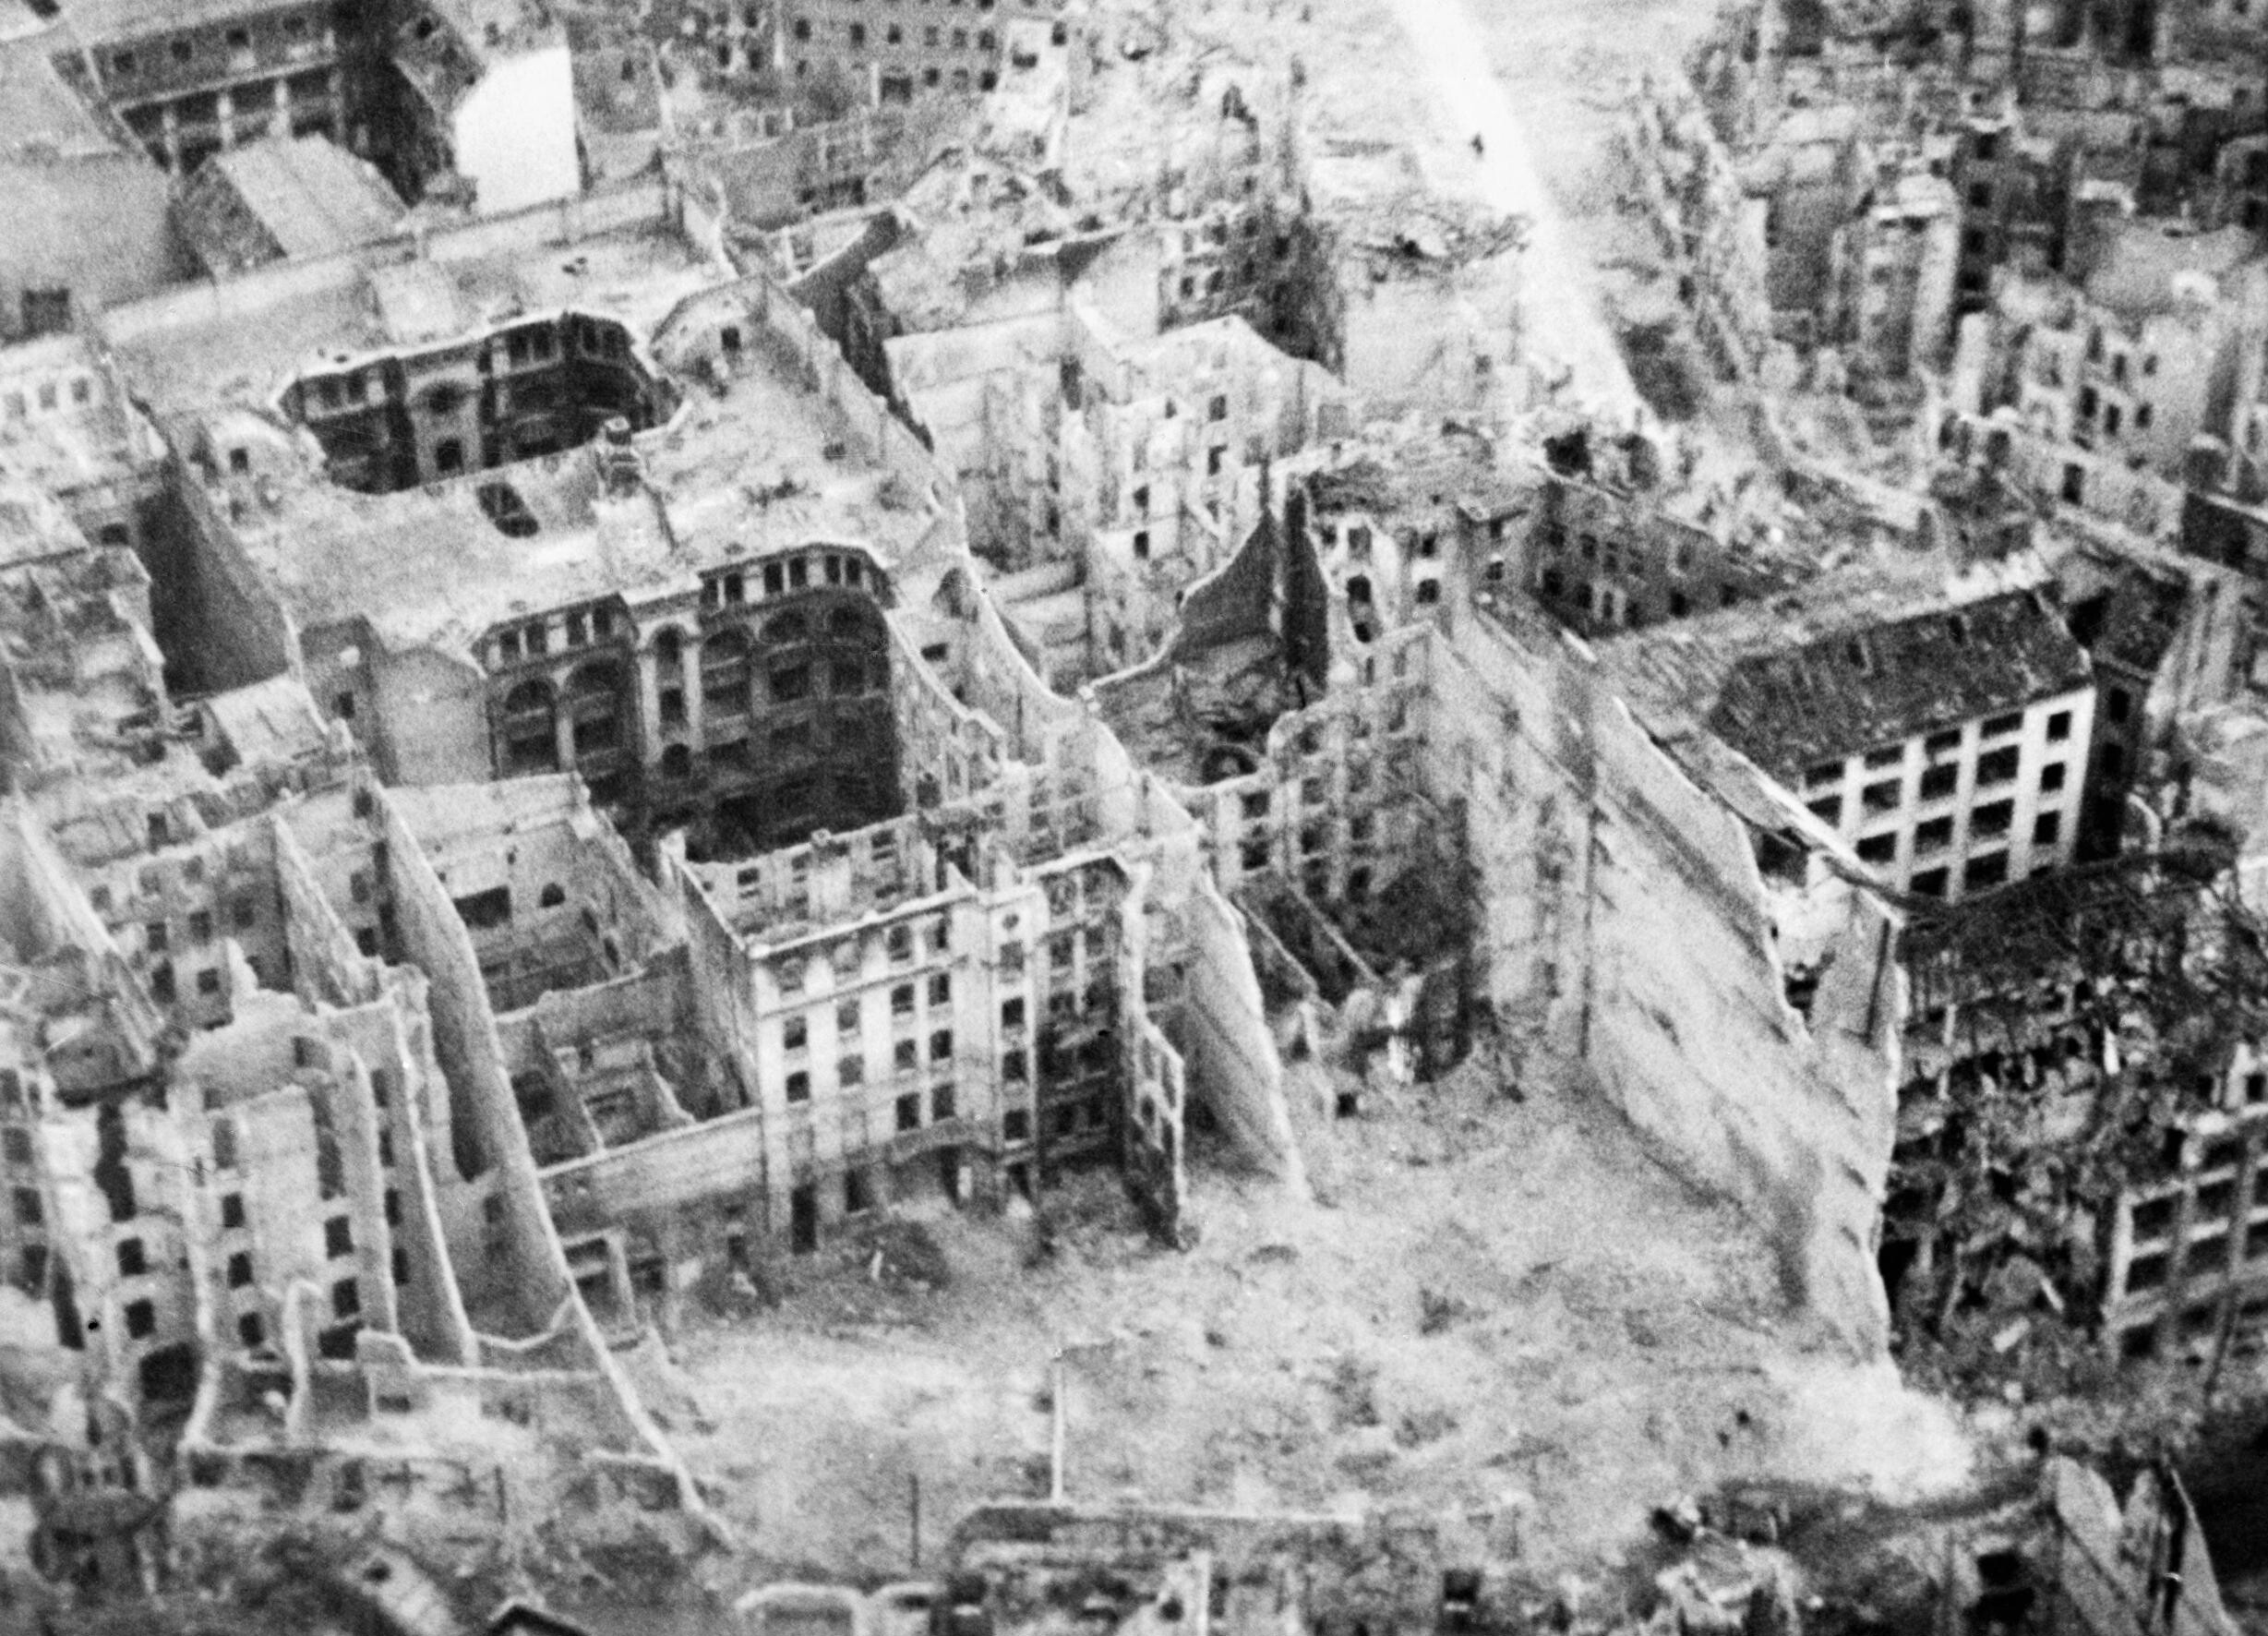 a description of the aftermath of the second world war around the world Description: 2001 ap us history dbq on cold war: what were the cold war fears of the american people in the aftermath of the second world warhow successfully did the administration of president dwight d eise.